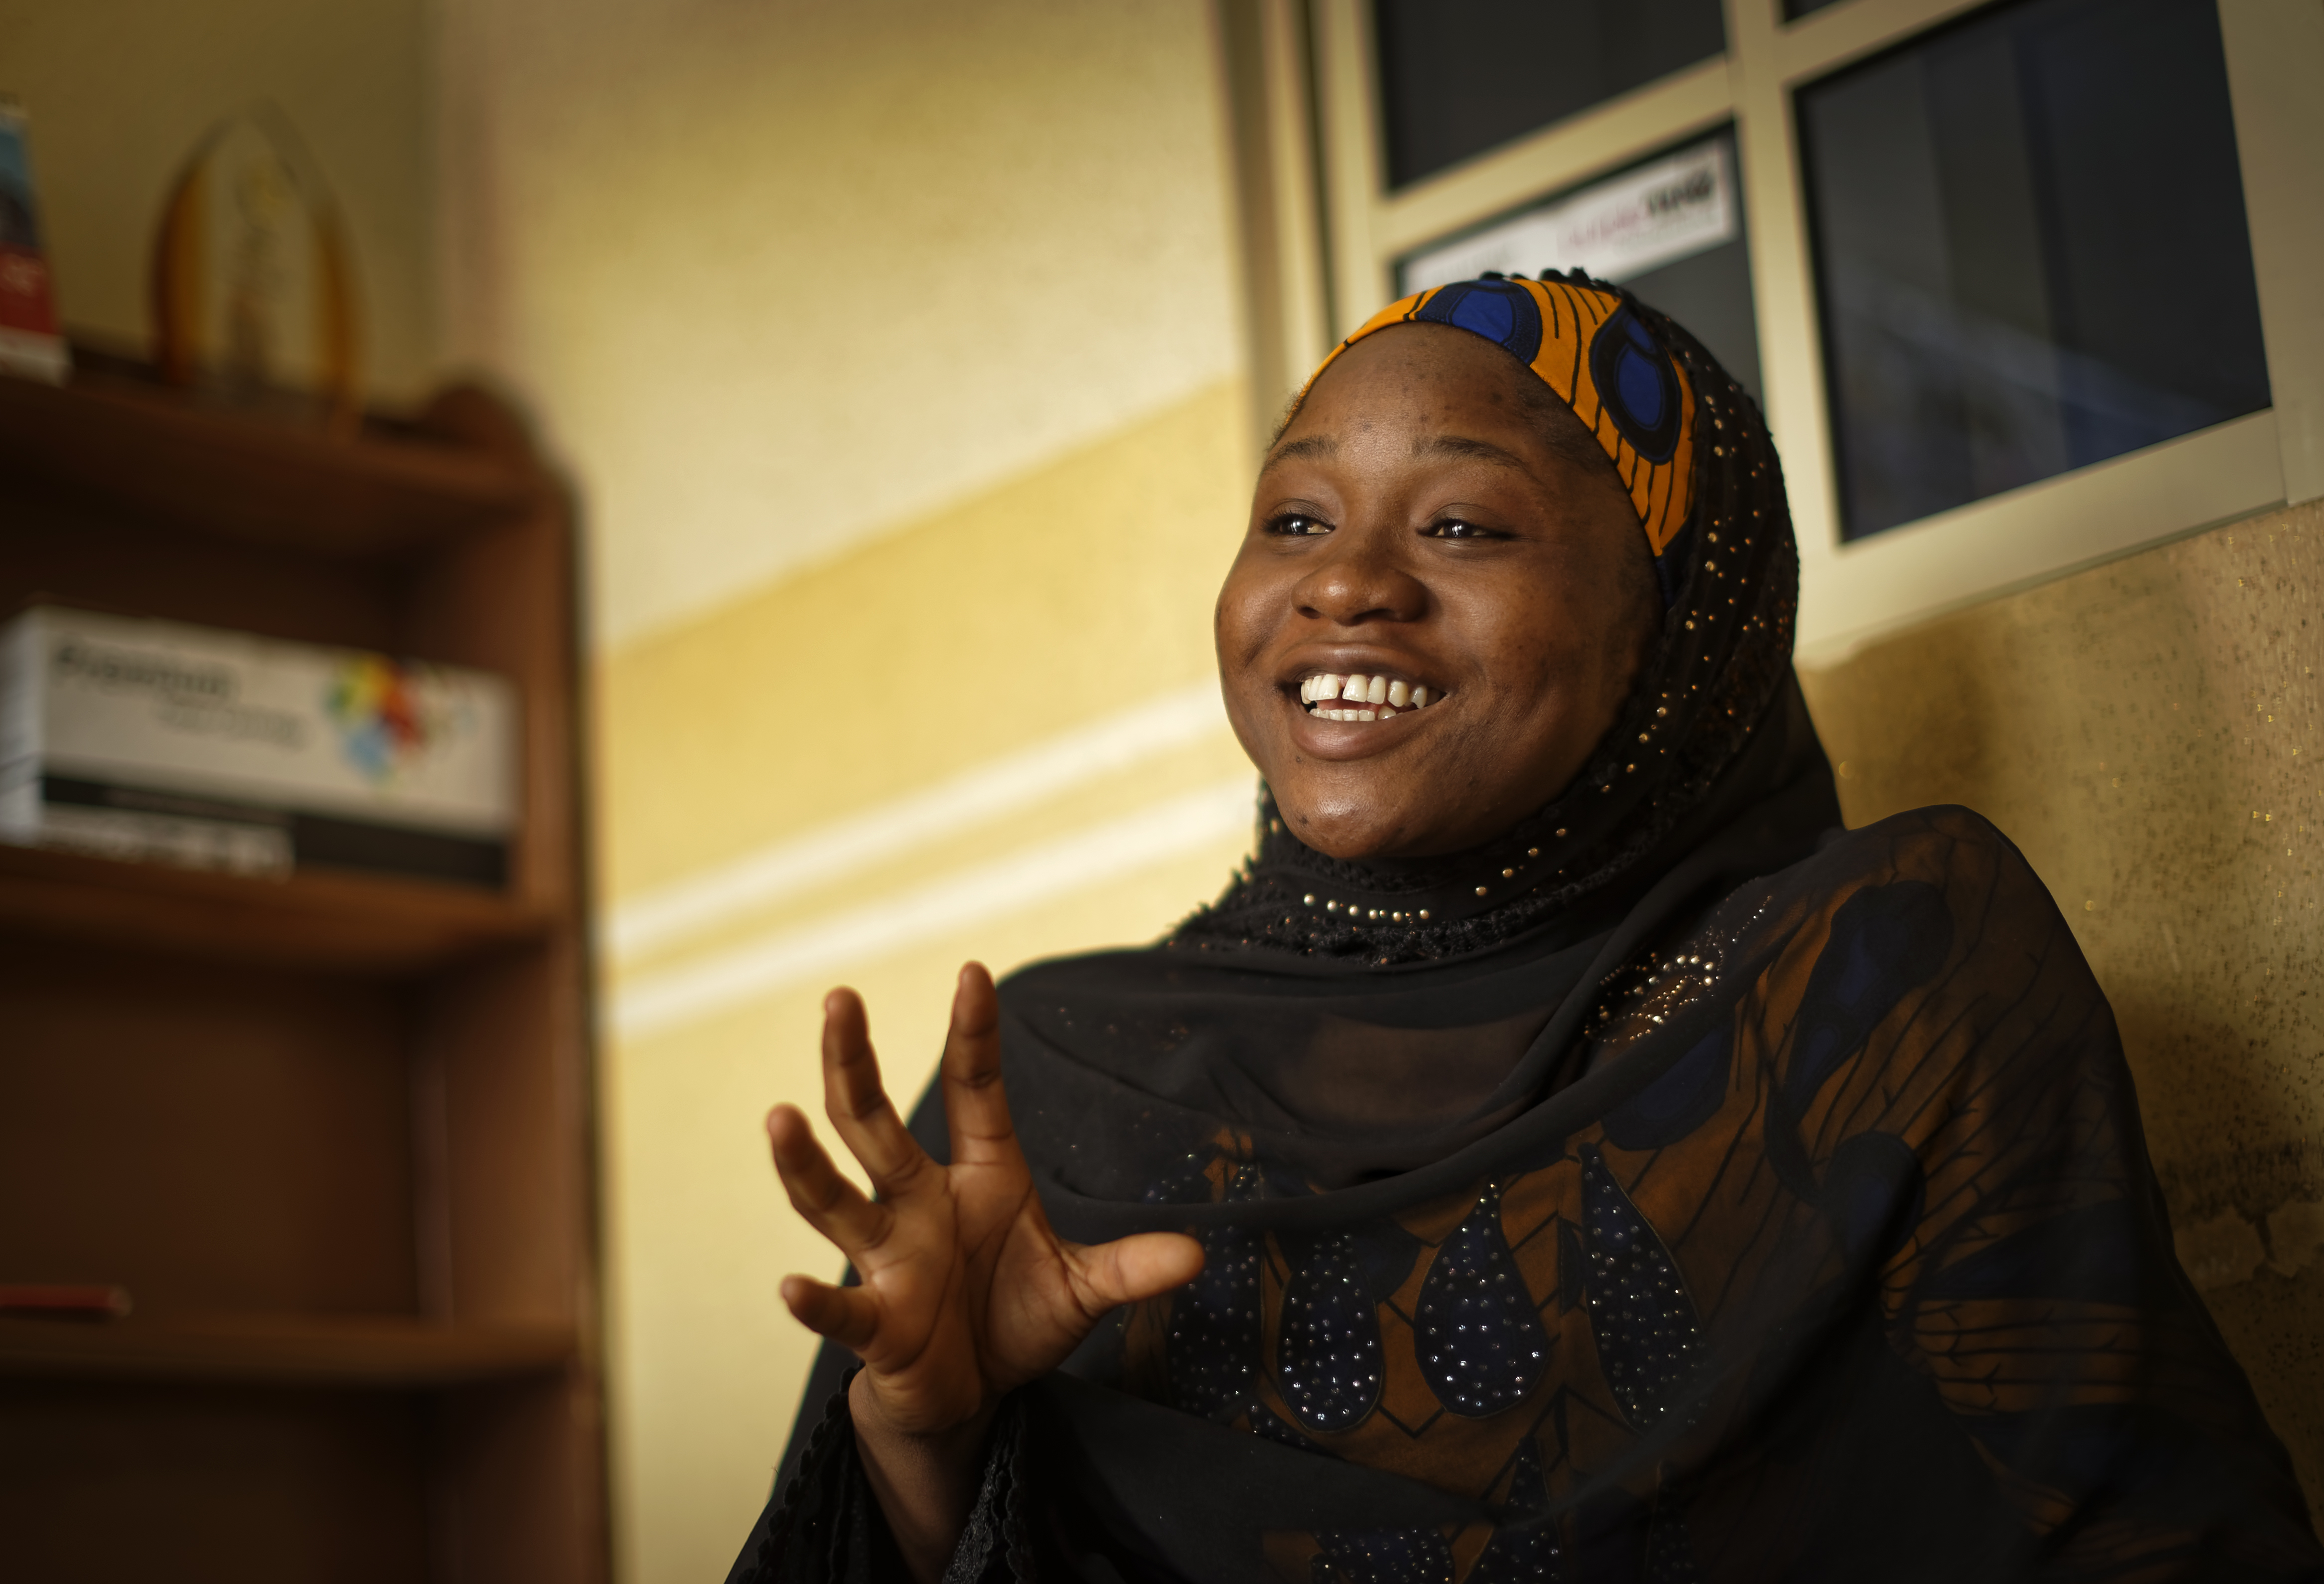 FILE - Zainab Sulaiman Umar, 26, a candidate for the State House of Assembly in Kumbotso constituency, Kano state, speaks to the Associated Press at an activists office in Kano, northern Nigeria, Feb. 15, 2019.